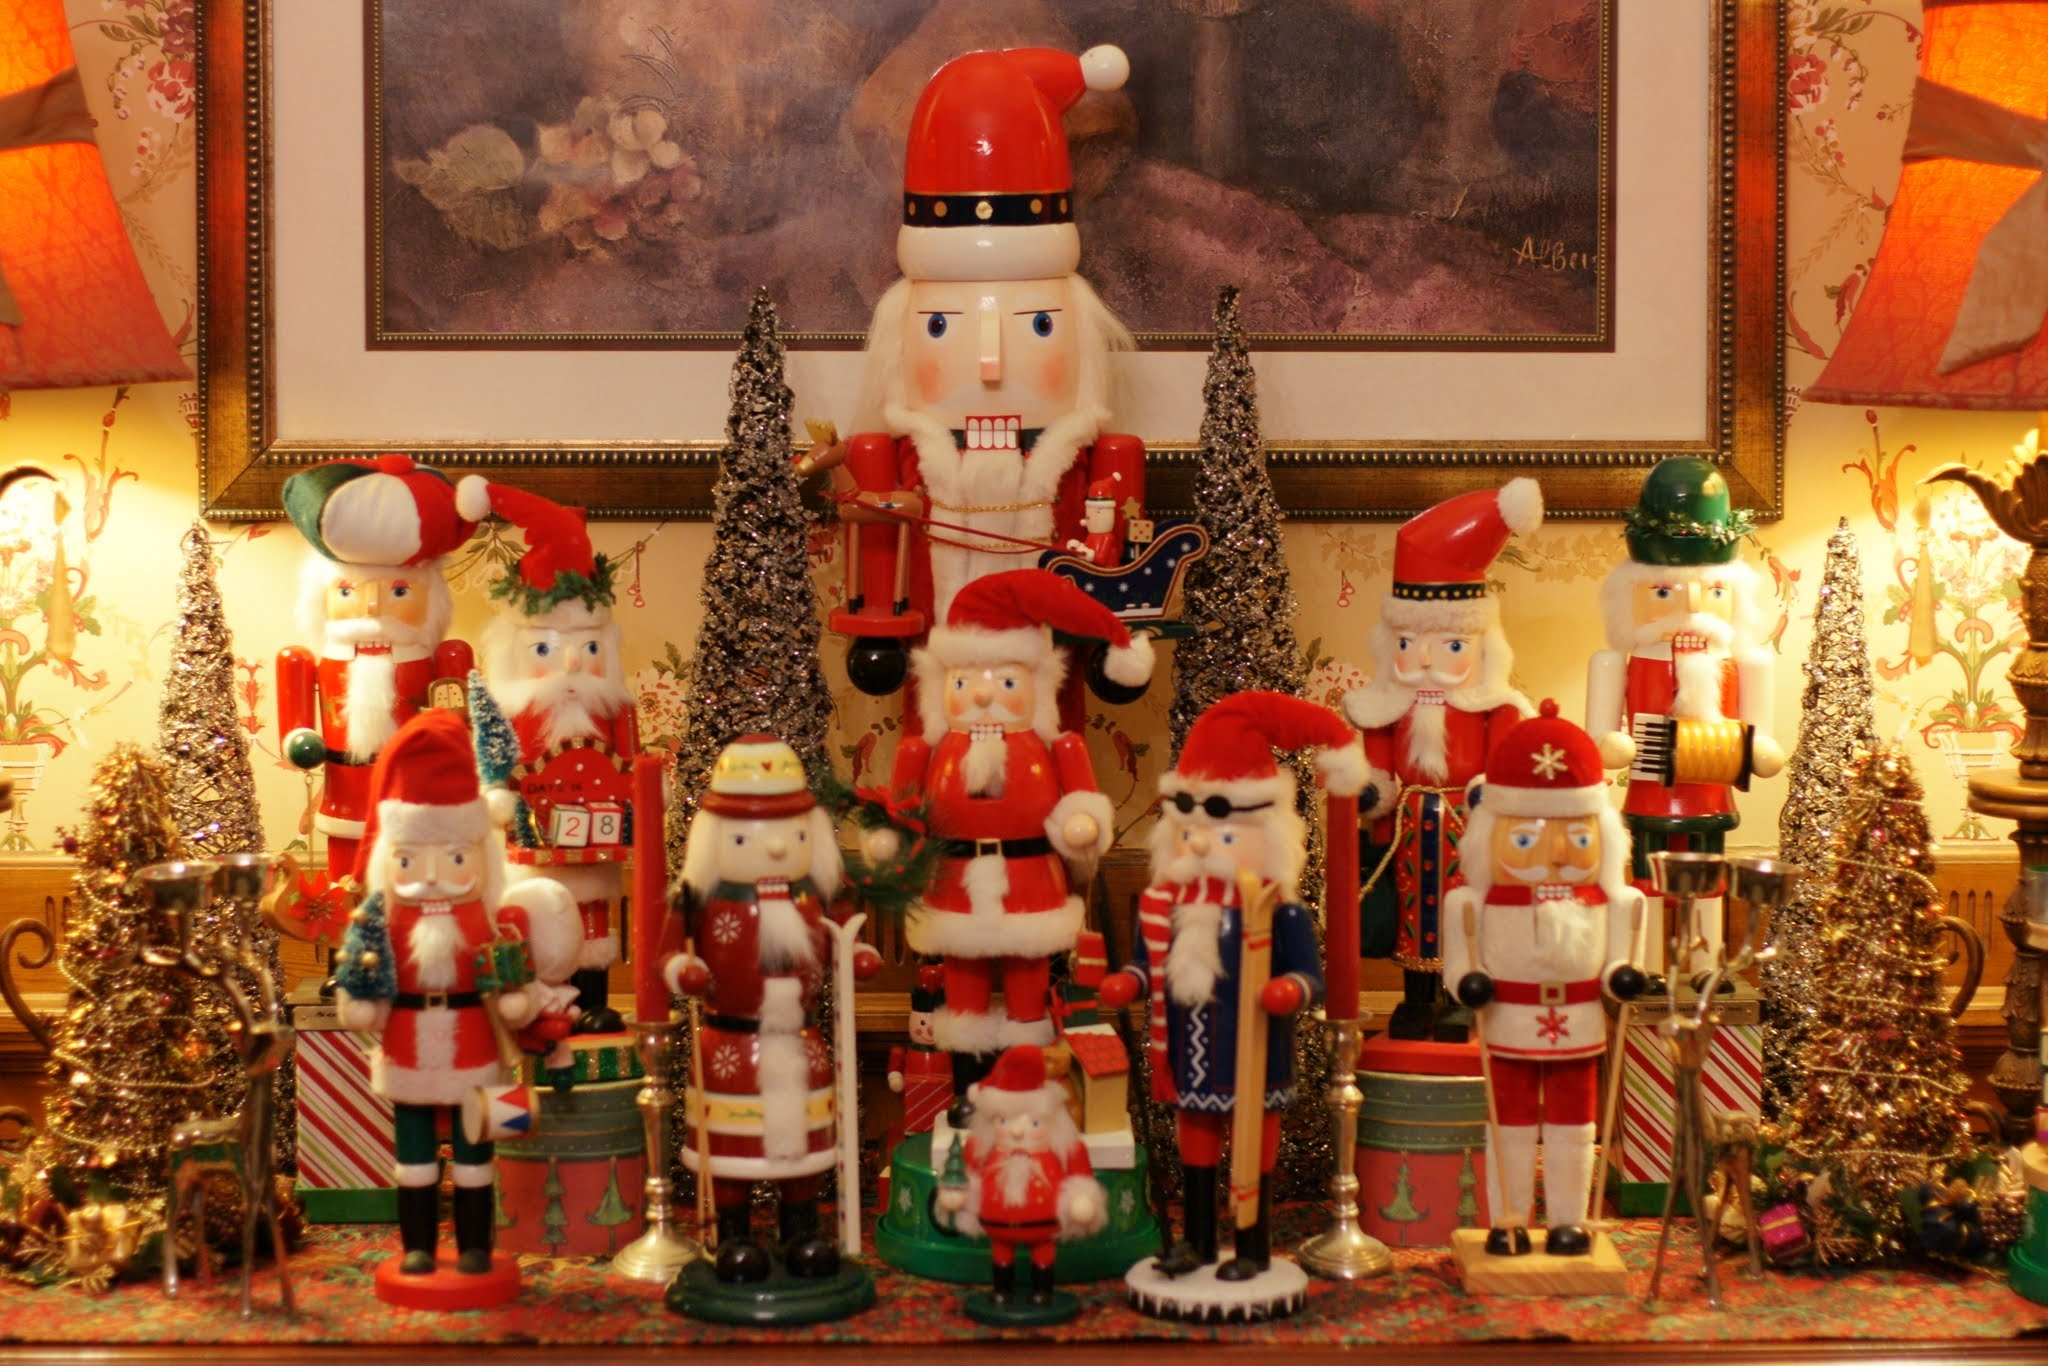 The Nutcrackers are so fun, they deserve a second photo! Credit: PJ Walter Photography.